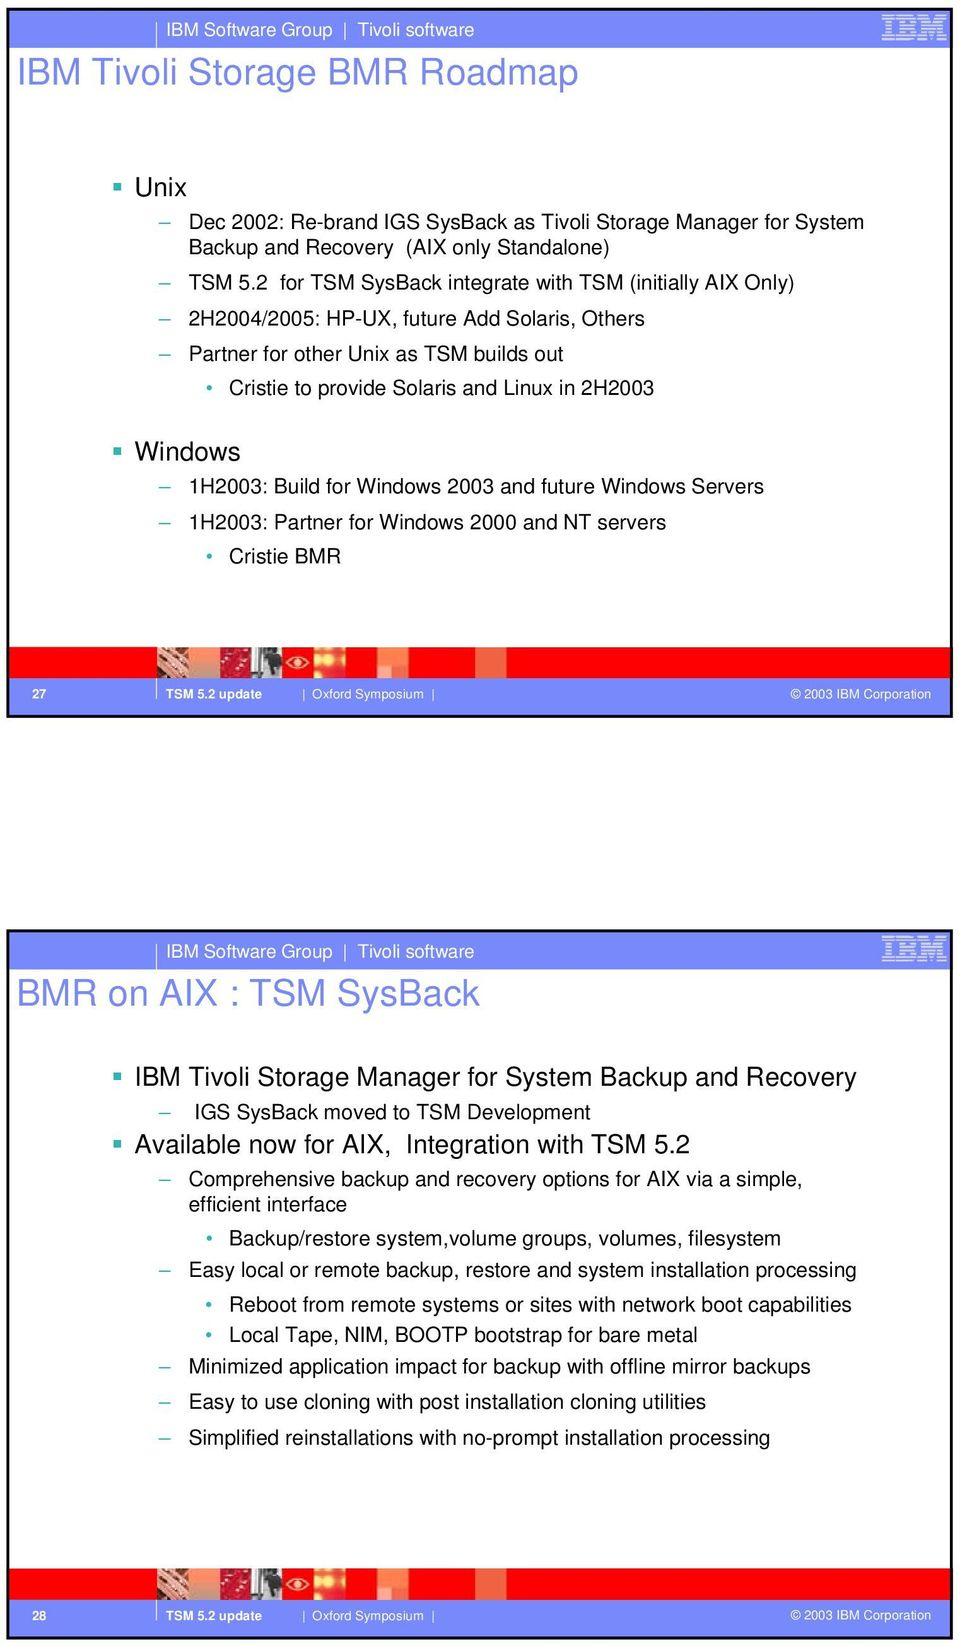 Windows 1H2003: Build for Windows 2003 and future Windows Servers 1H2003: Partner for Windows 2000 and NT servers Cristie BMR 27 BMR on AIX : TSM SysBack IBM Tivoli Storage Manager for System Backup